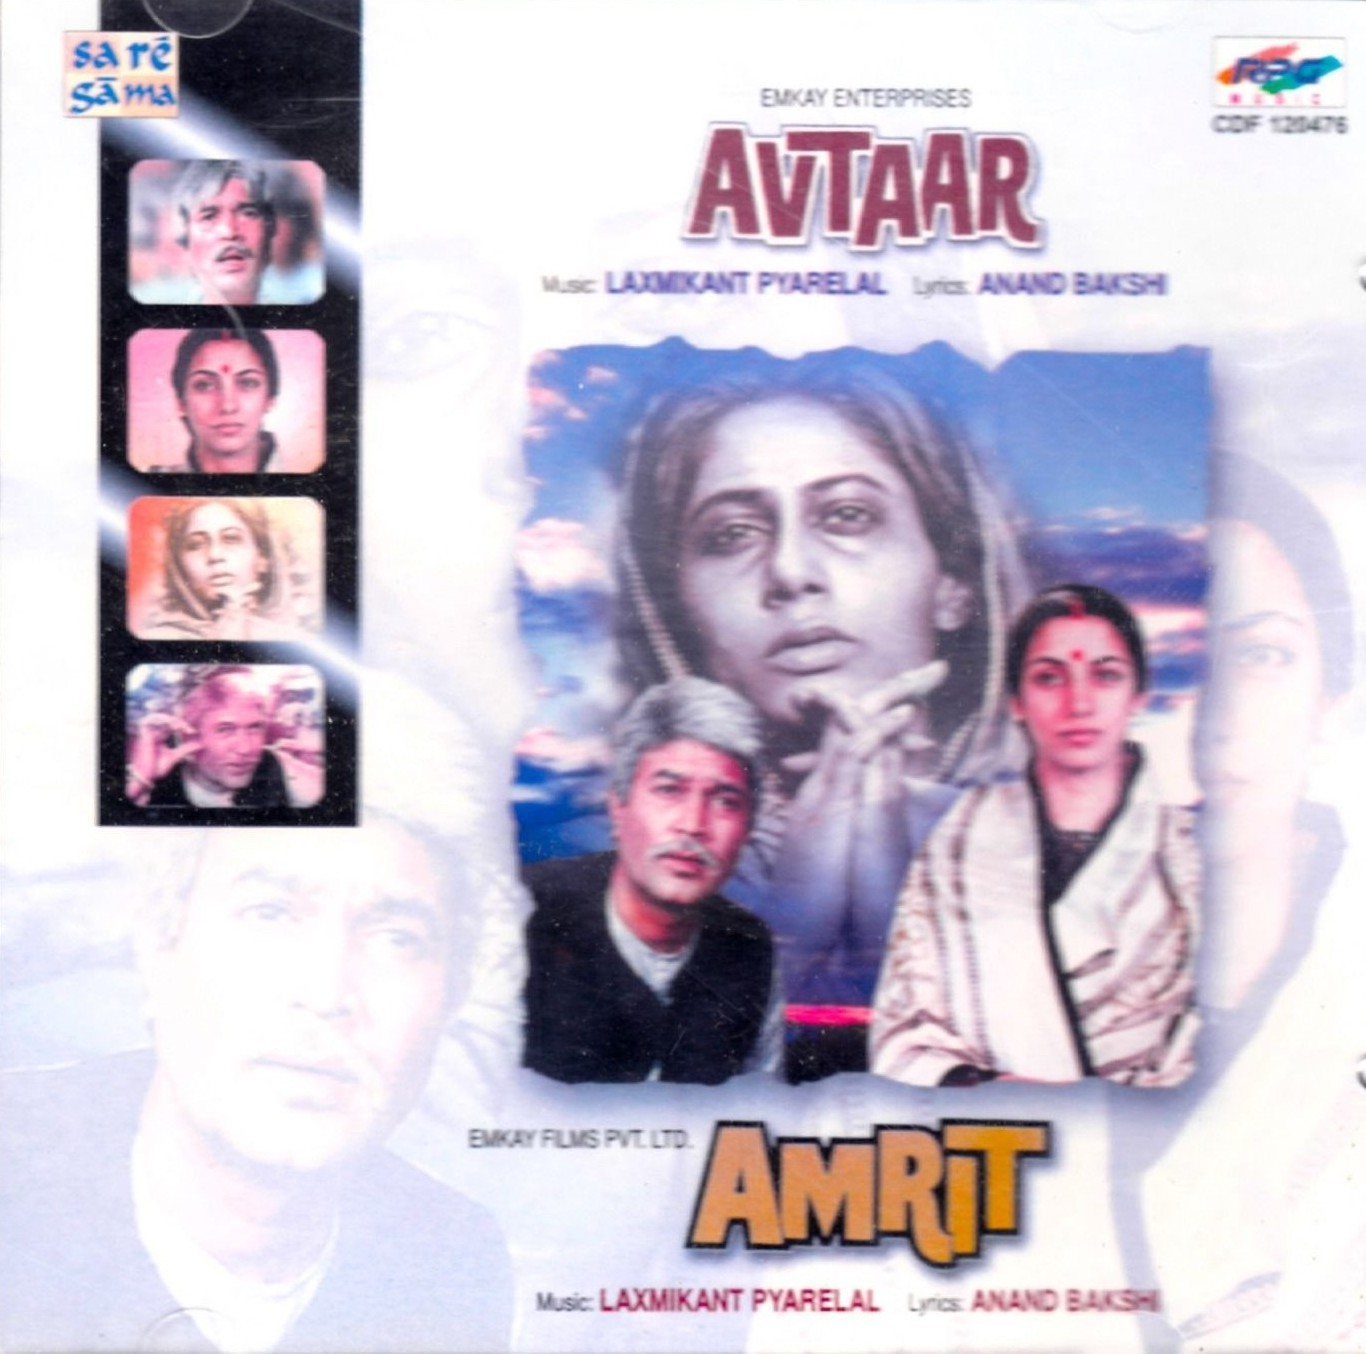 film music site - avtaar / amrit soundtrack (various artists, anand